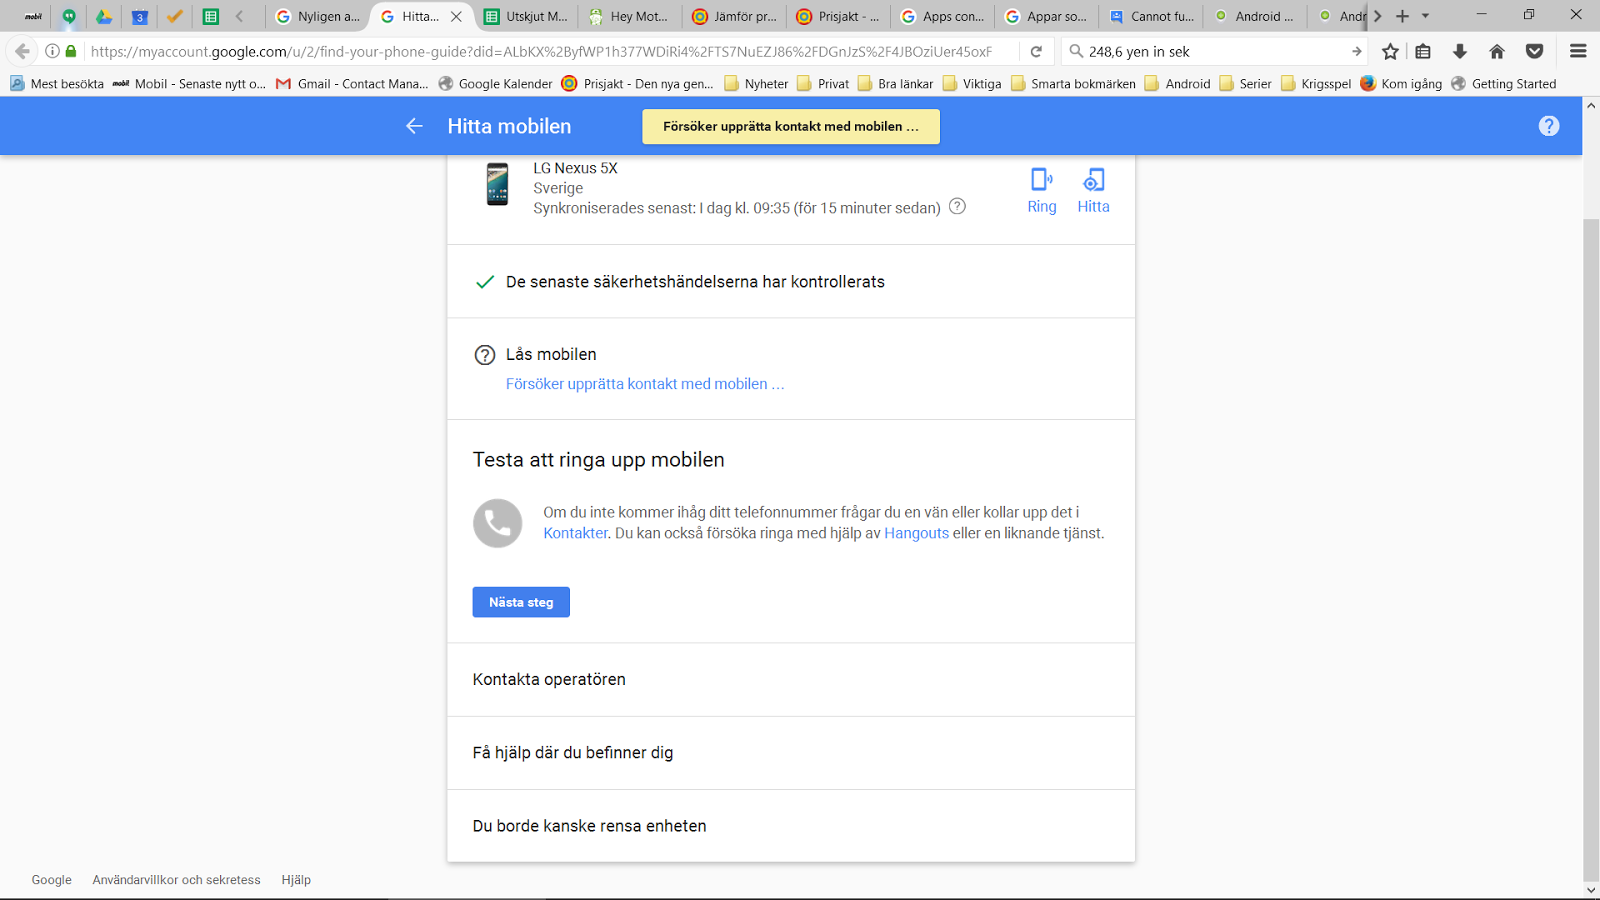 Re Cannot Fully Disable Phone Google Product Forums